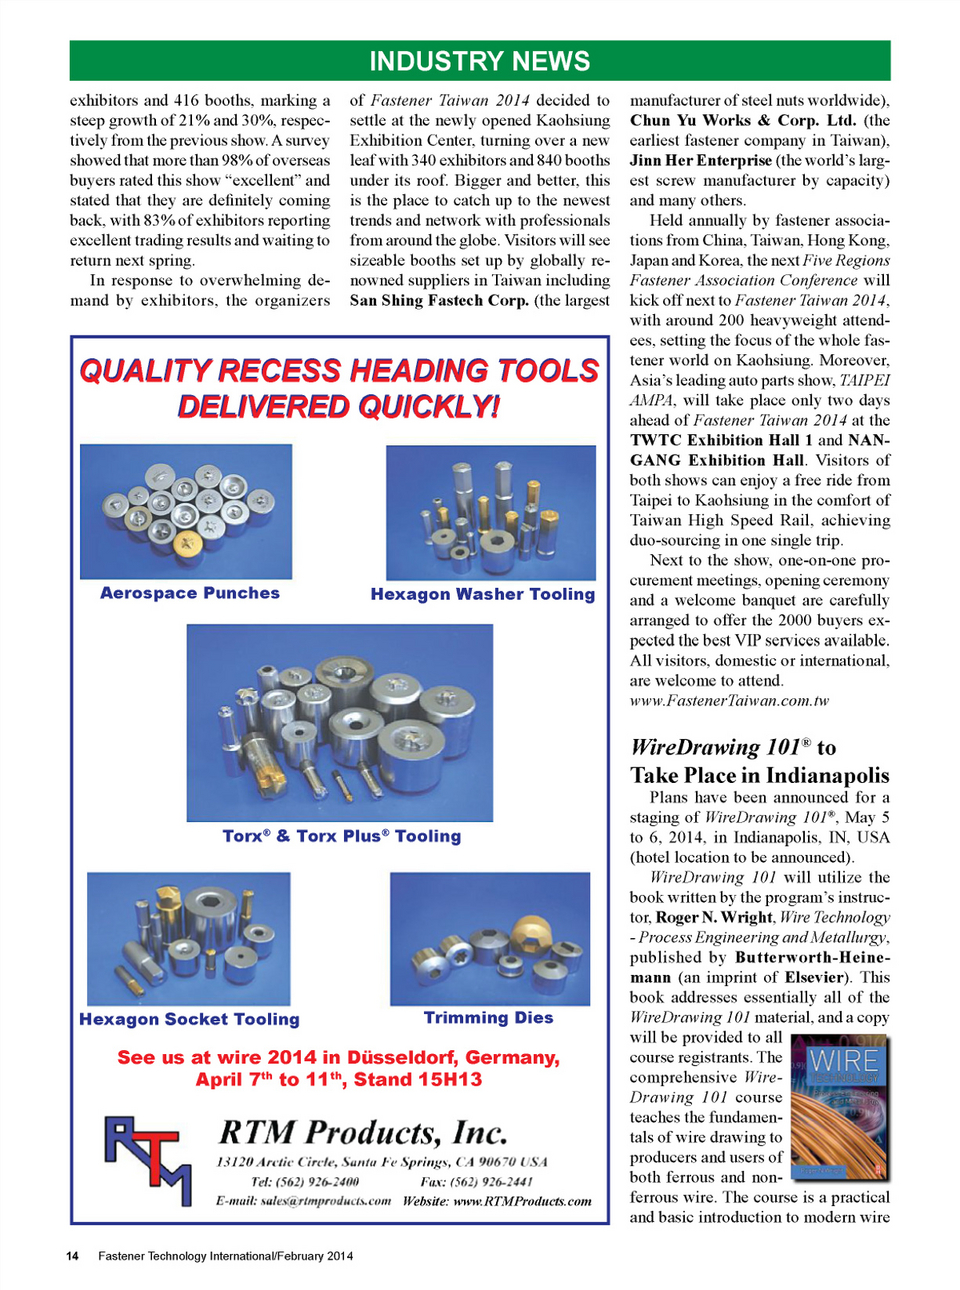 Fastener Technology International February/March 2014 Page 14